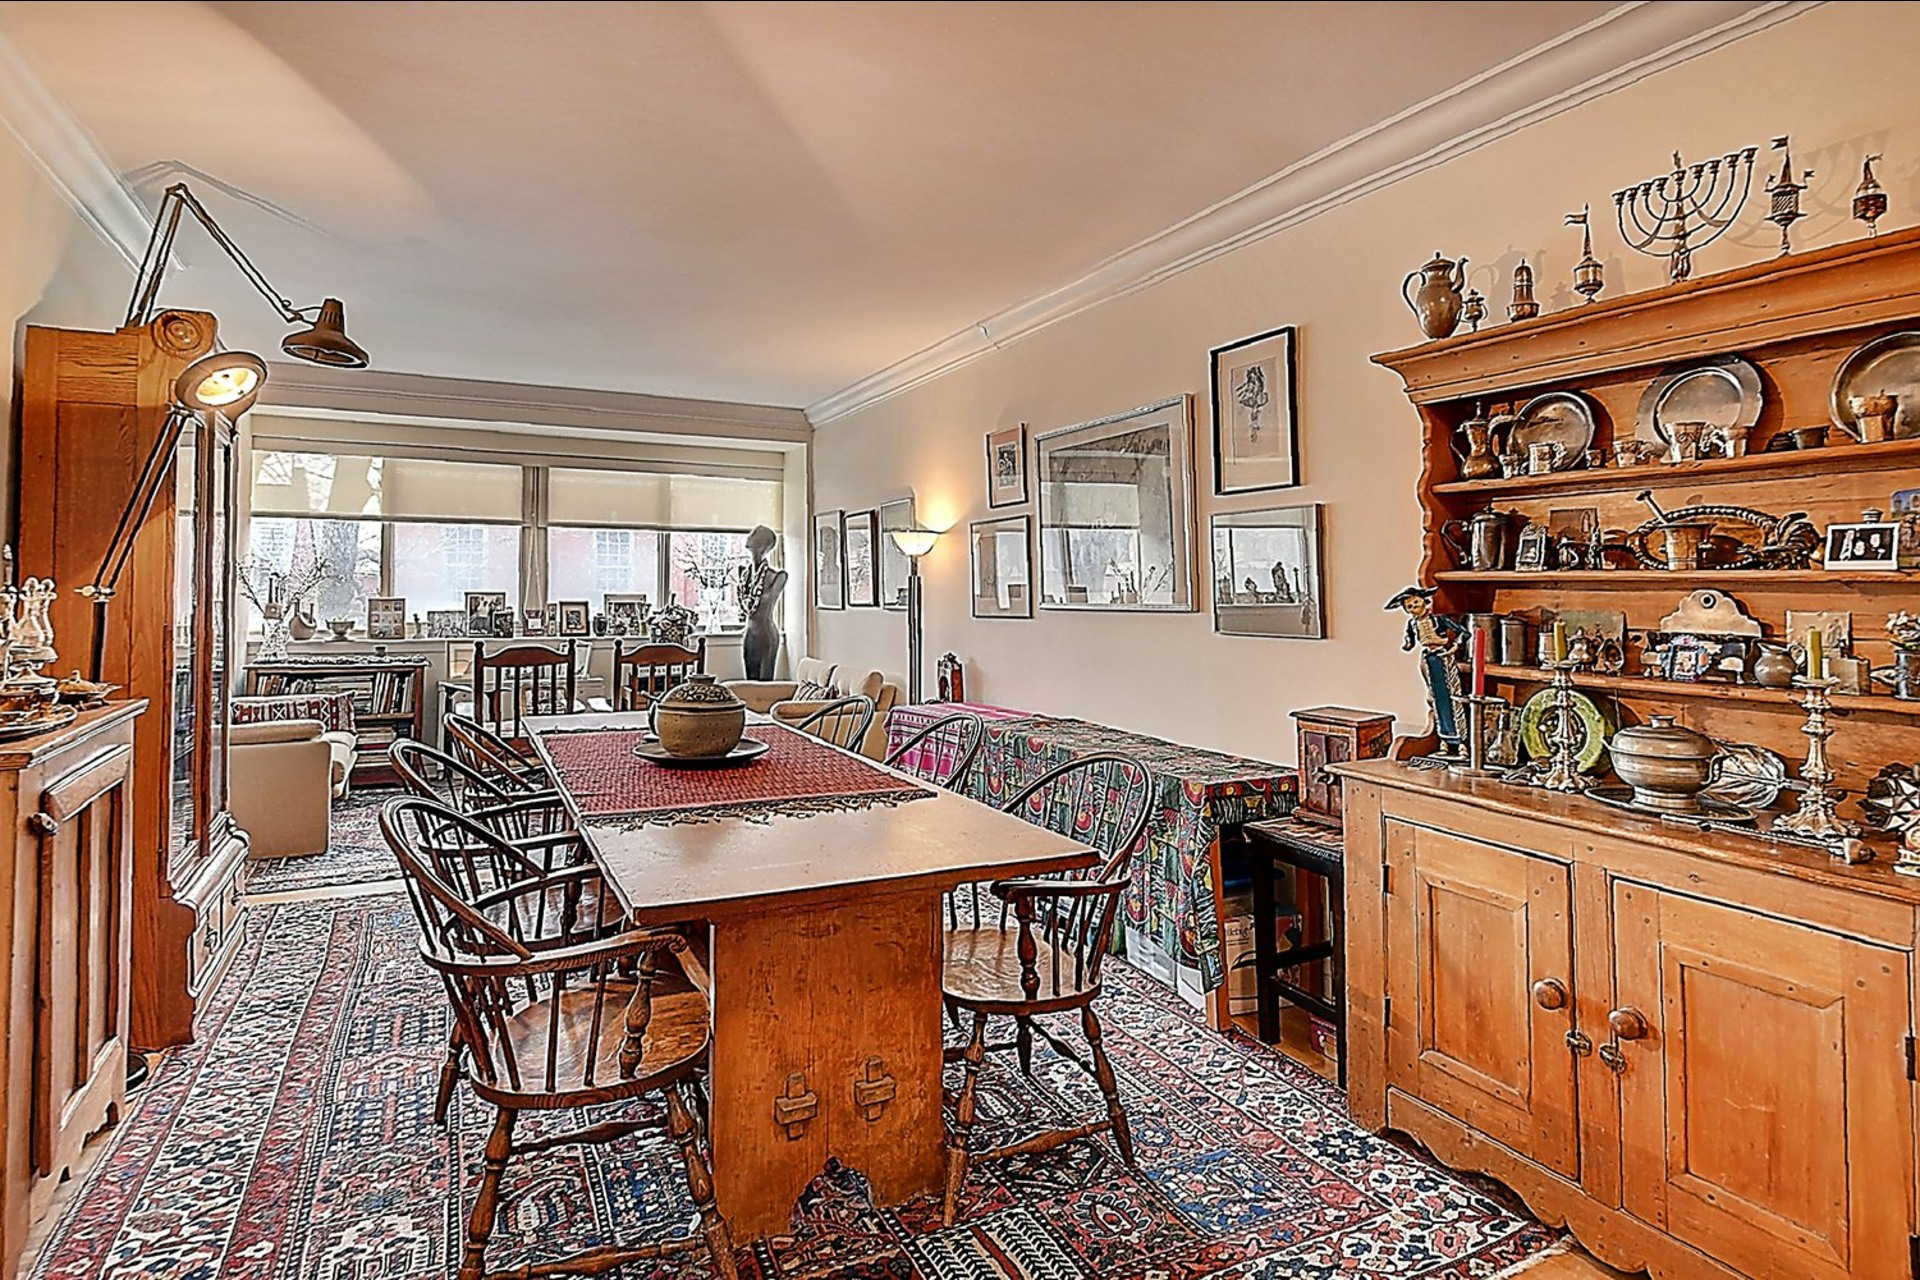 image 6 - Apartment For sale Westmount - 5 rooms